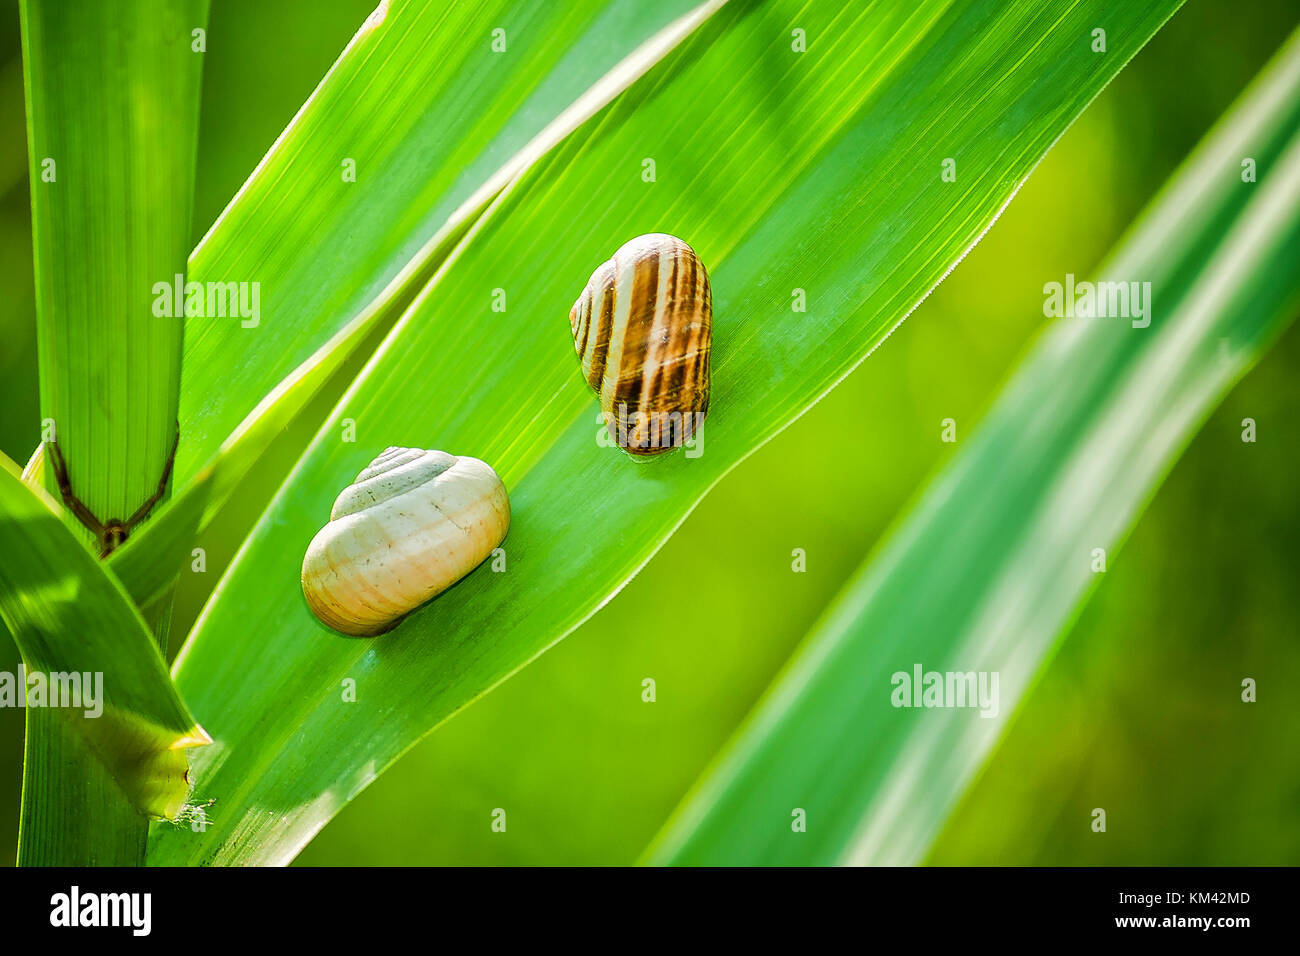 Slugs and lurking Spider on the left Hand side - Stock Image